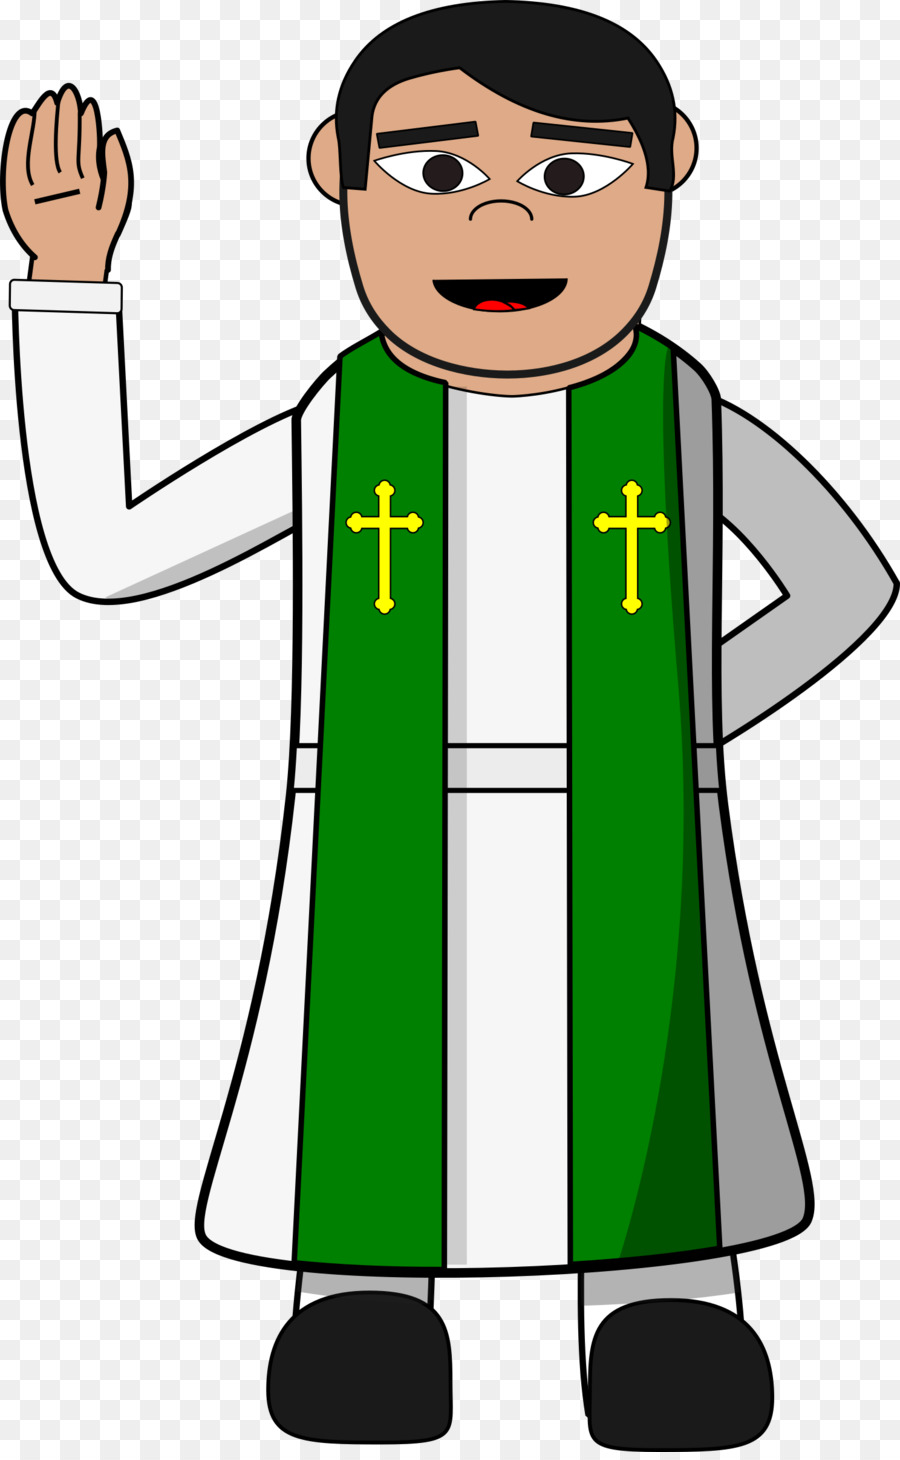 A country preacher clipart image black and white Pastor Standing png download - 1488*2400 - Free Transparent Pastor ... image black and white